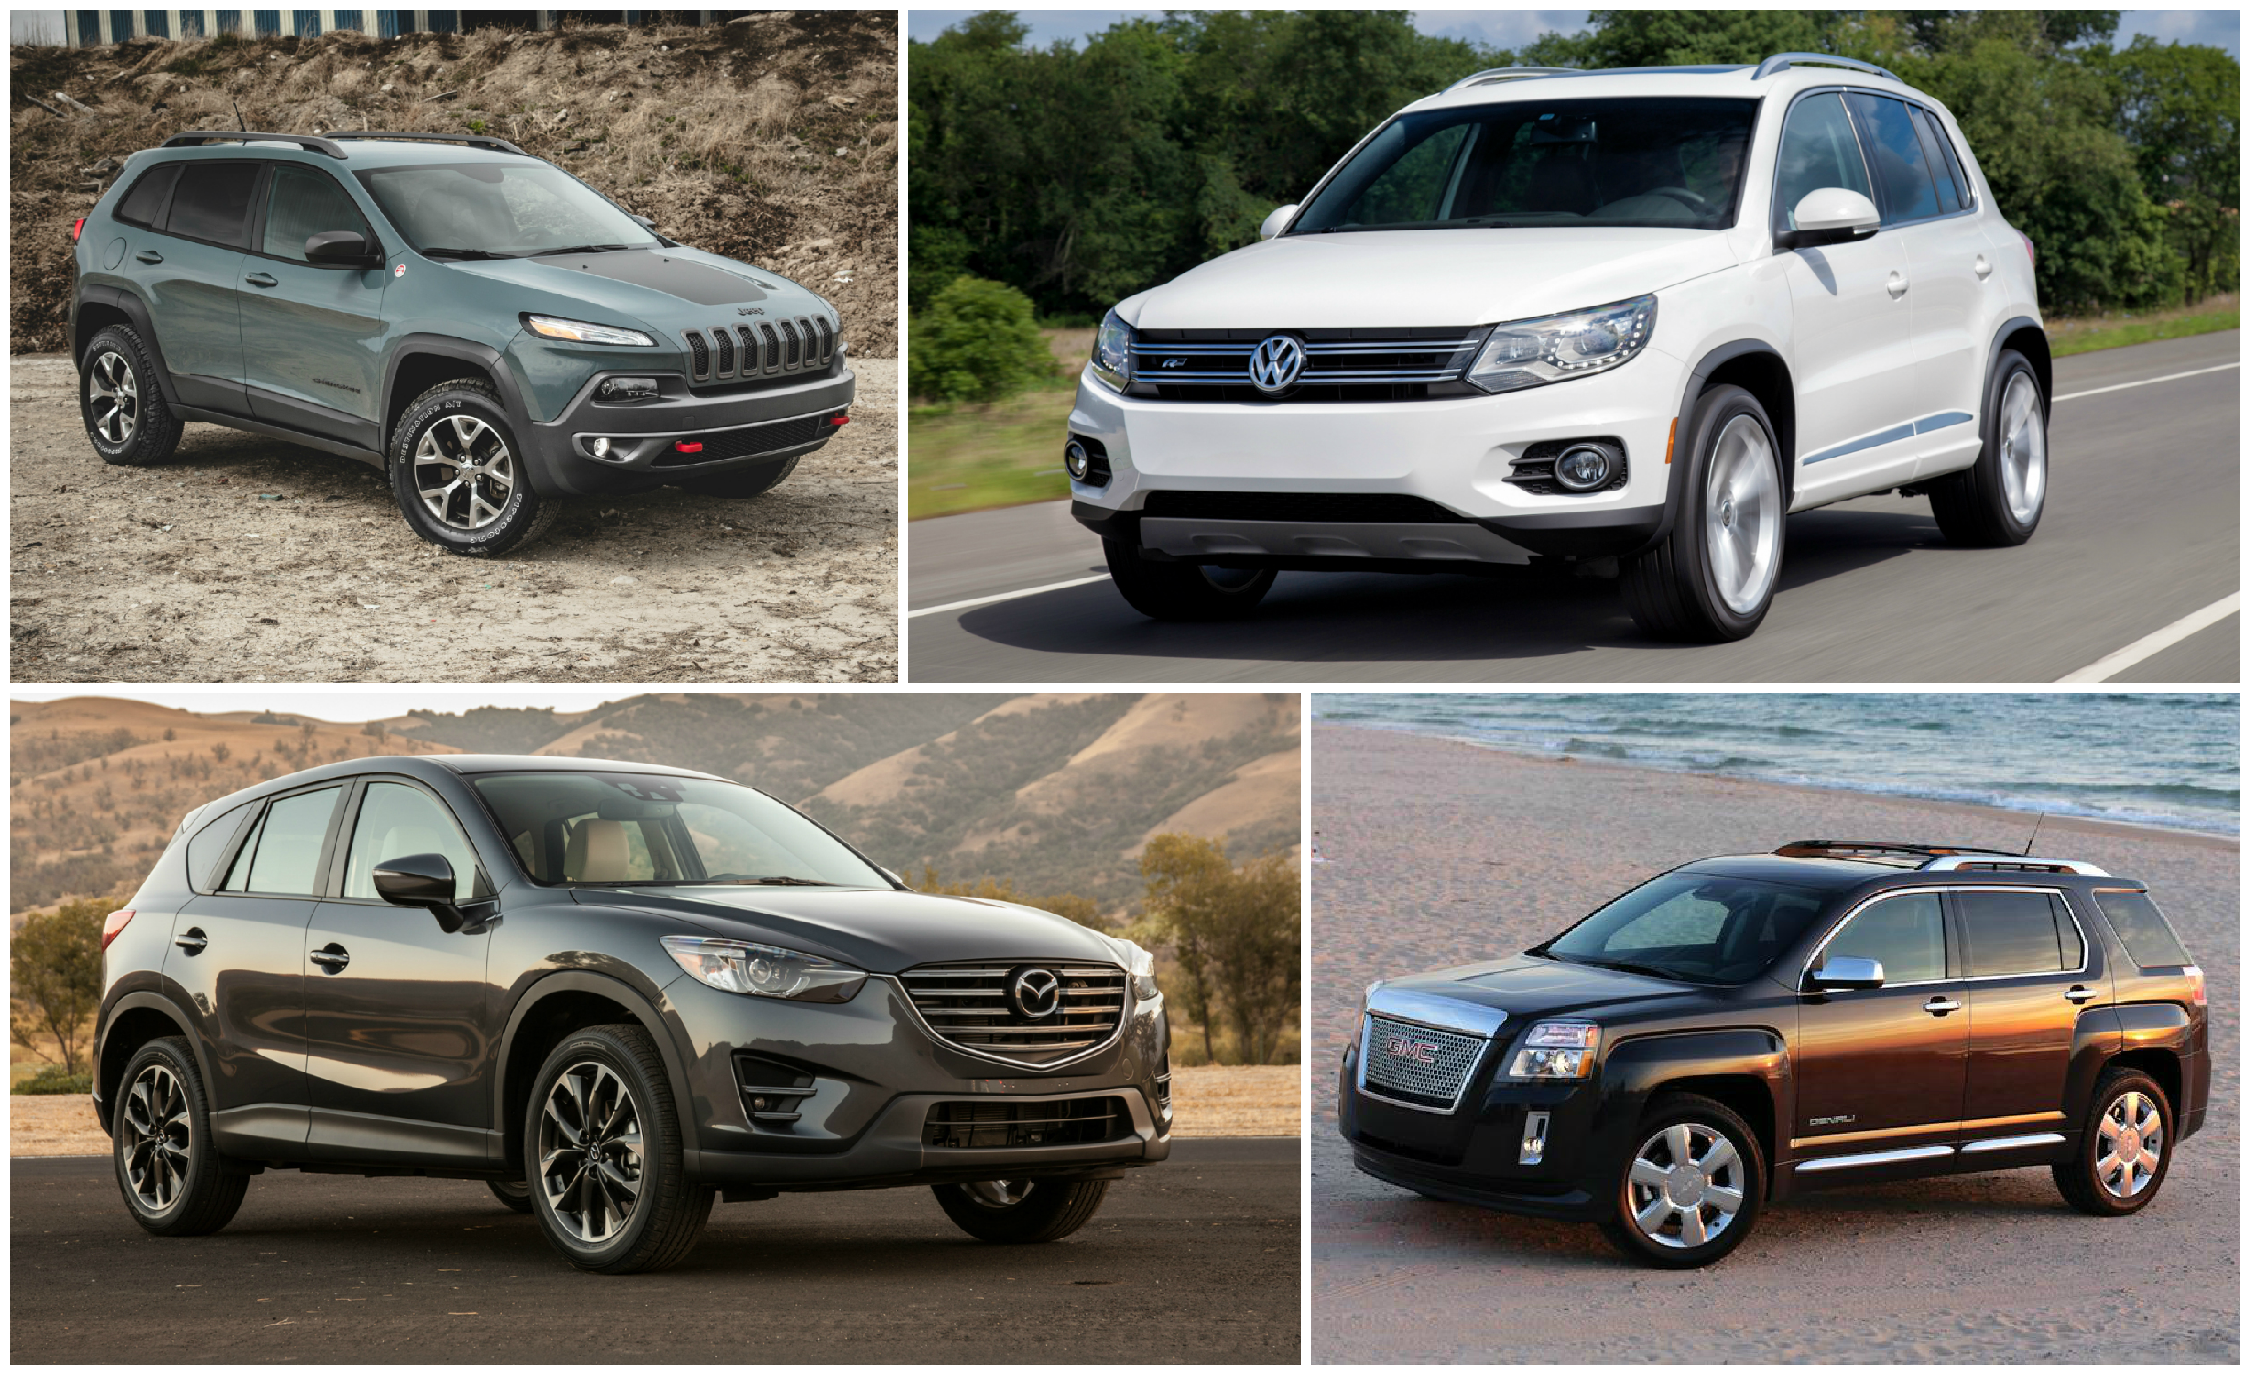 Worksheet. Practical Matters Every Compact Crossover SUV Ranked from Worst